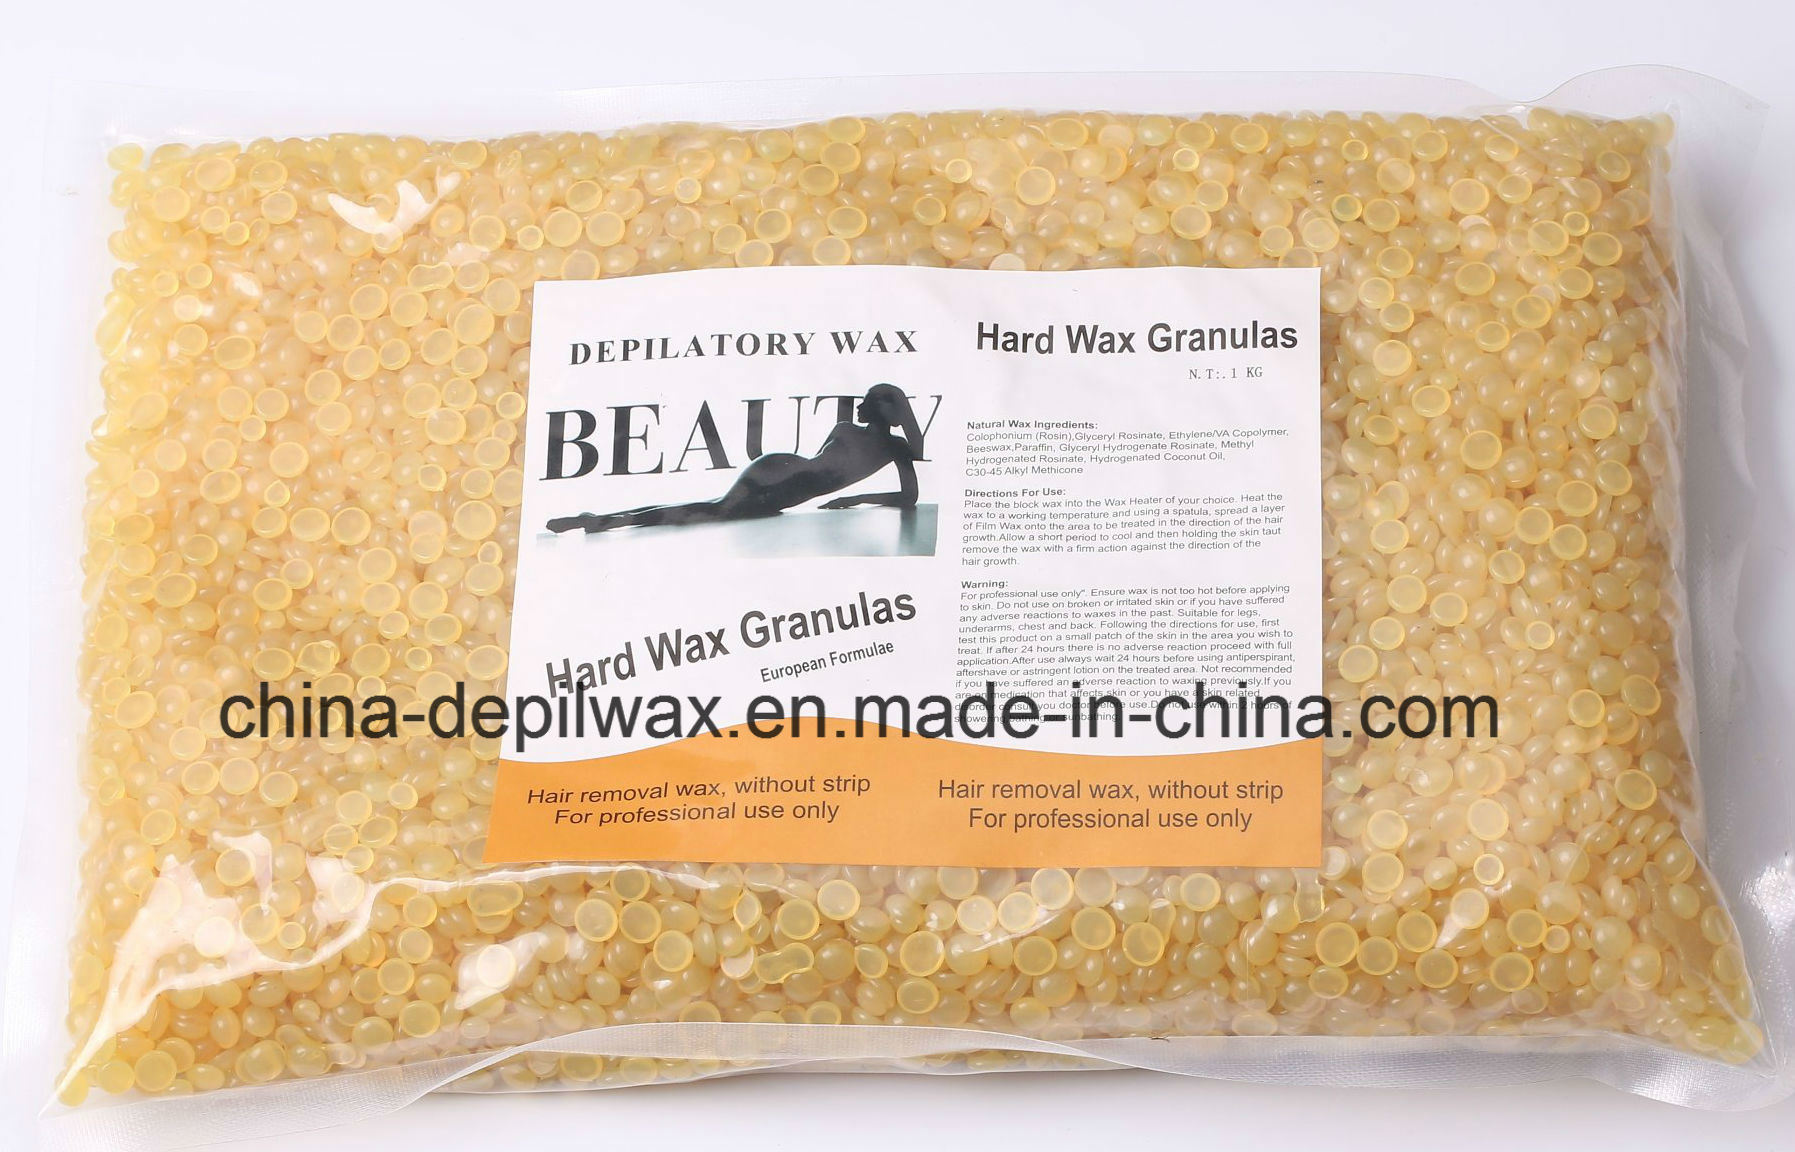 Chocolate Hard Wax Pellets Depilatory Wax with Wonderful Coca Butter Aroma